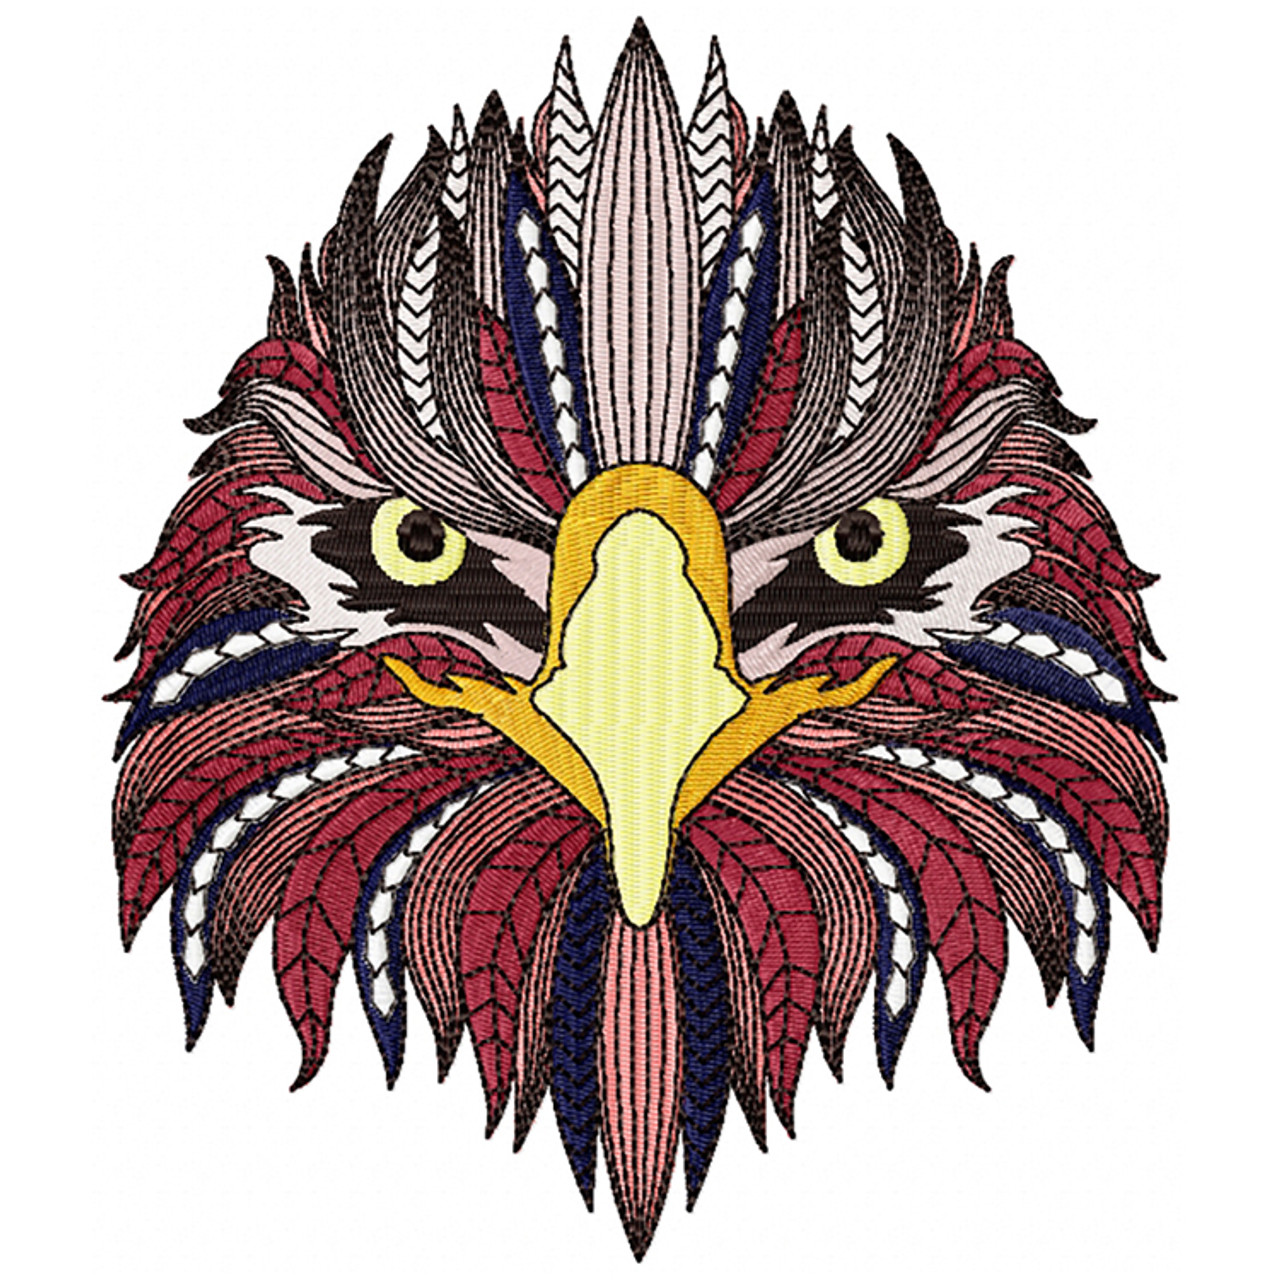 machine embroidery design detailed eagle face b collection. Black Bedroom Furniture Sets. Home Design Ideas